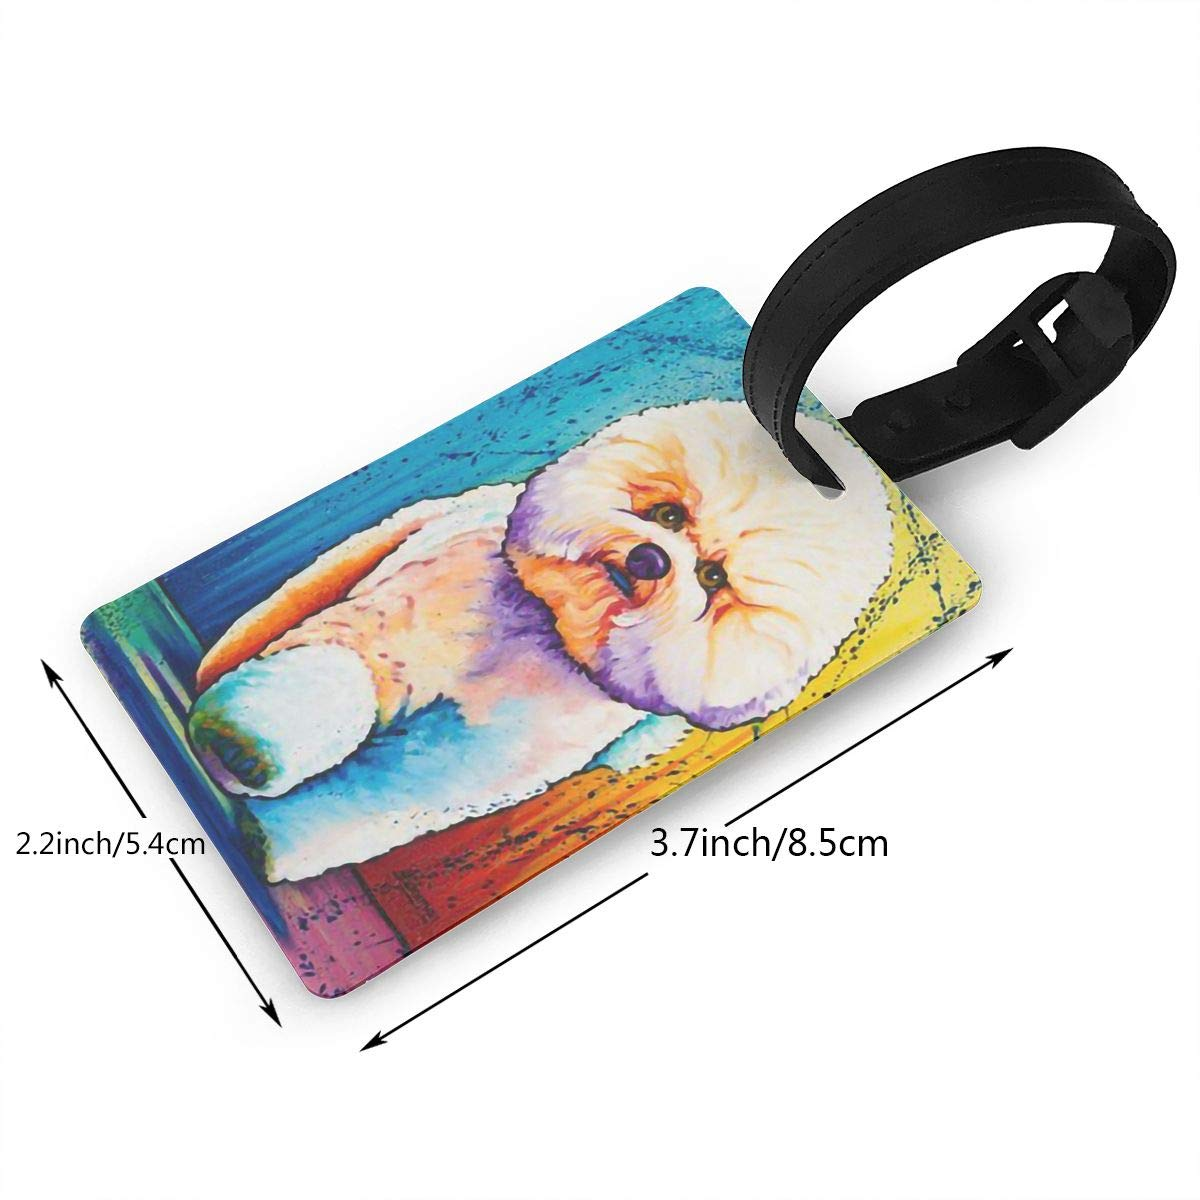 2 Pack Luggage Tags Bichon Frise Baggage Tag For Suitcase Bag Accessories